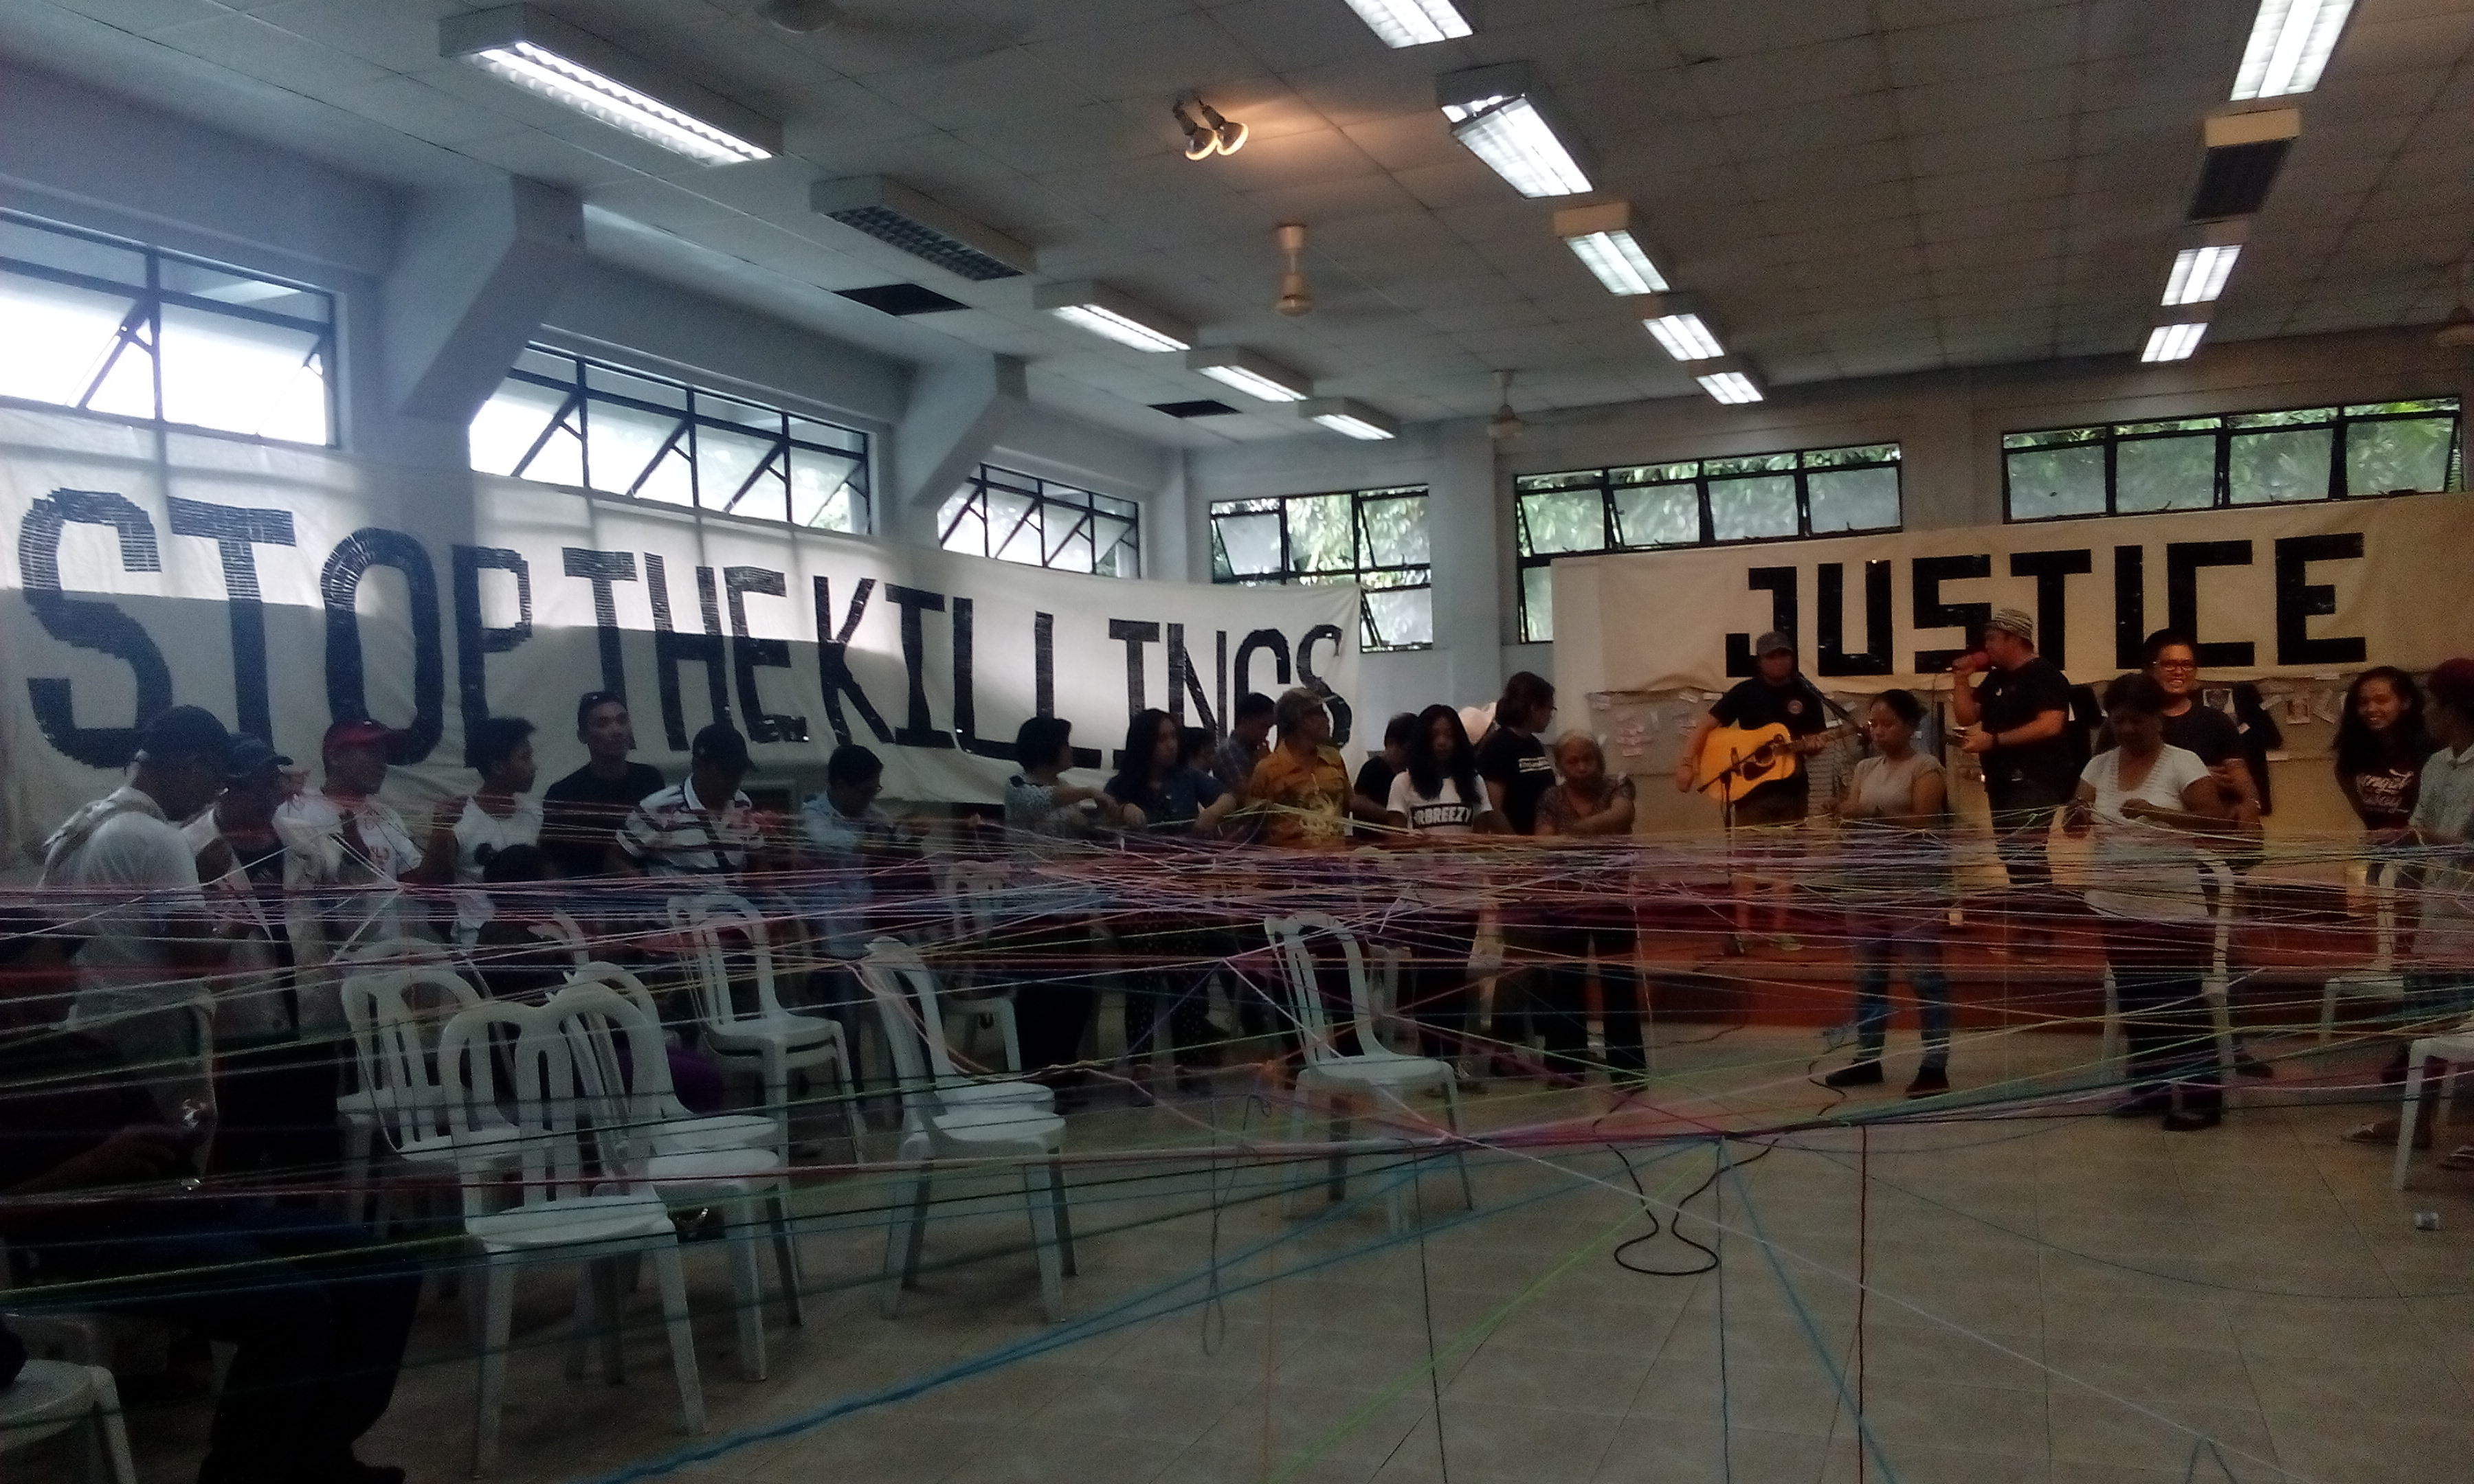 WEB OF LIFE. Former political prisoners, families of victims of enforced disappearance and political and drug-related killings 'spun' a web with colored yarn to symbolize their connection and united call for justice (Photo by Alab Mirasol Ayroso/Bulatlat)